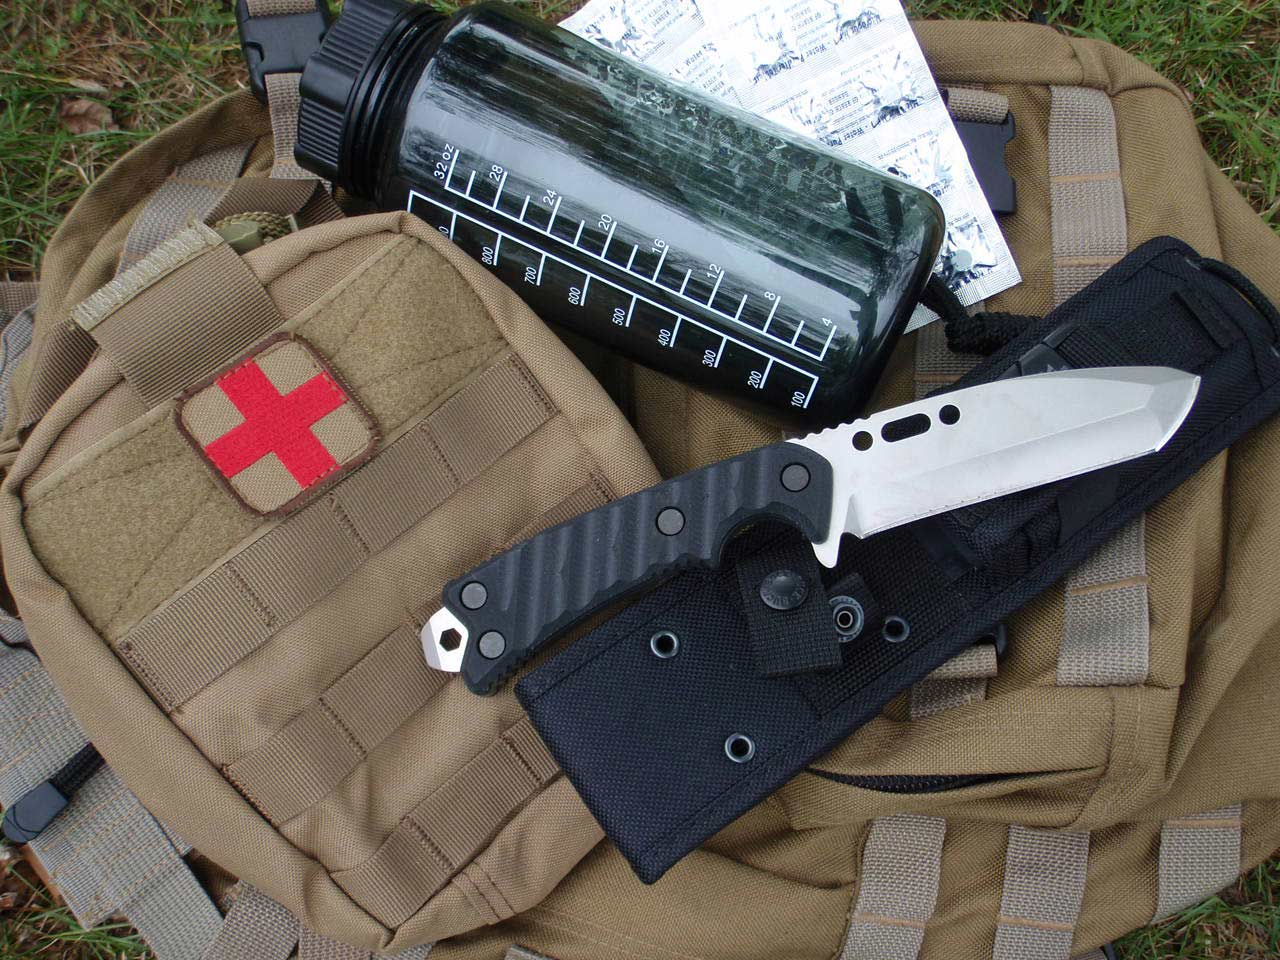 A knife and a water bottle on a survival backpack.